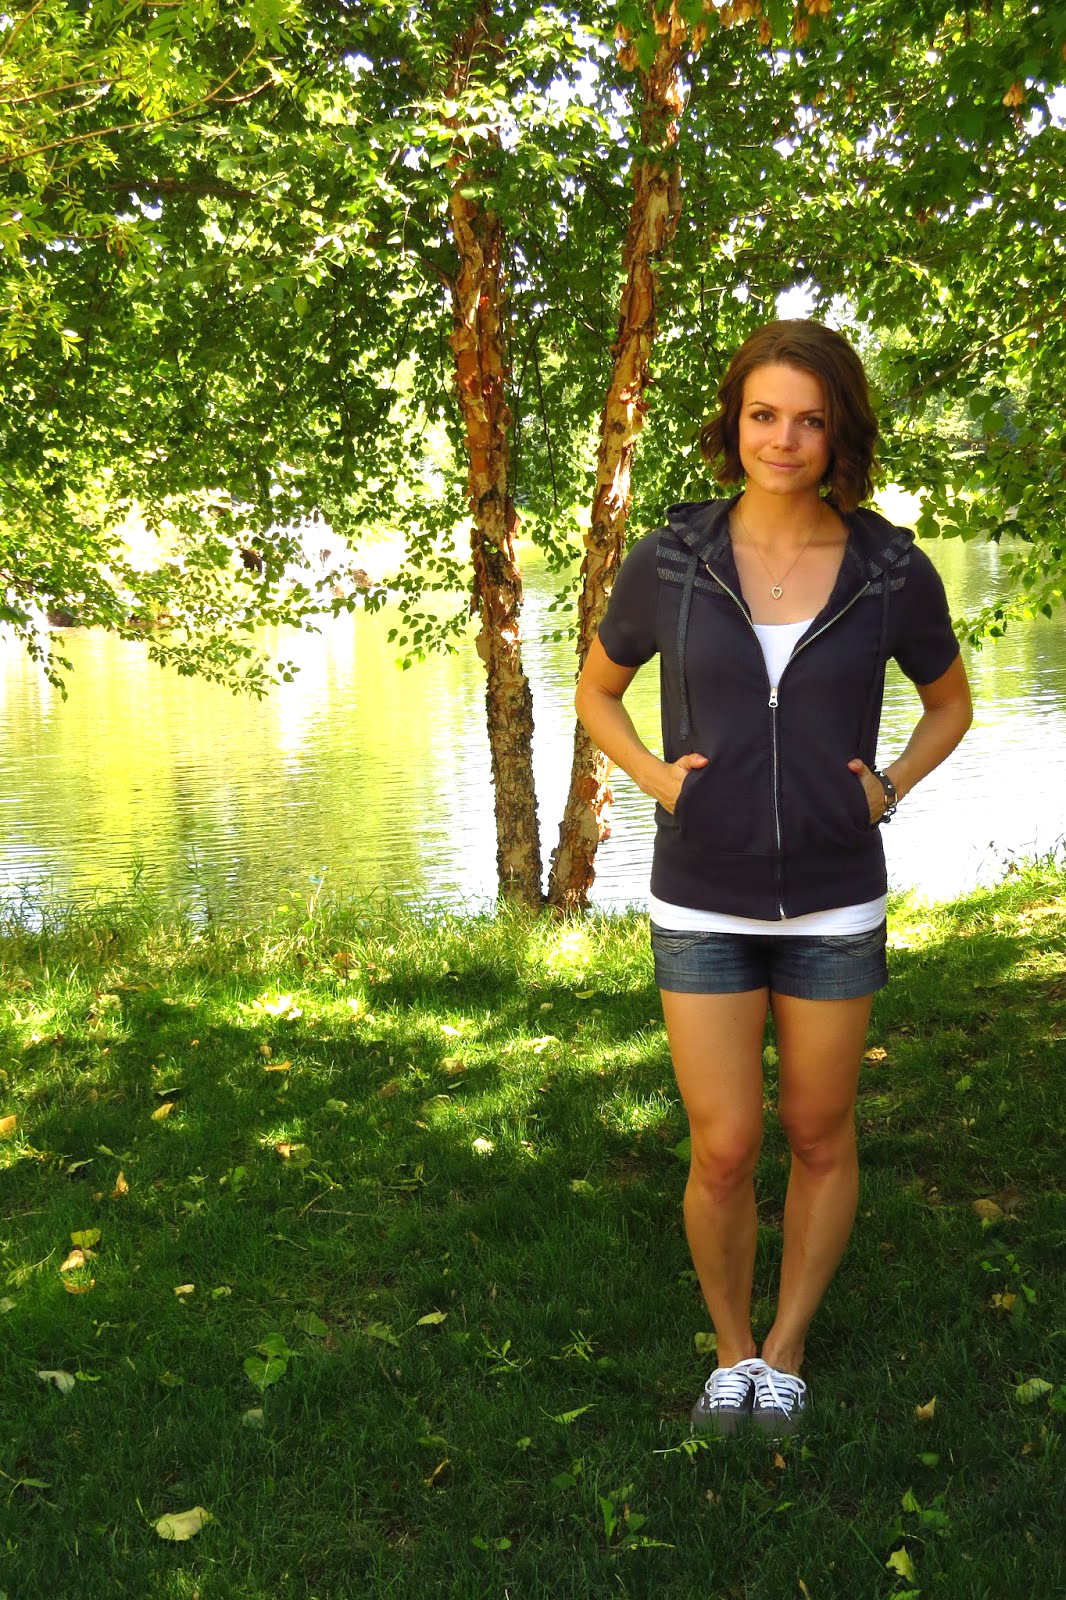 Sporty chic, Hoodie Shorts and Sneakers, Short Curled Hairstyle